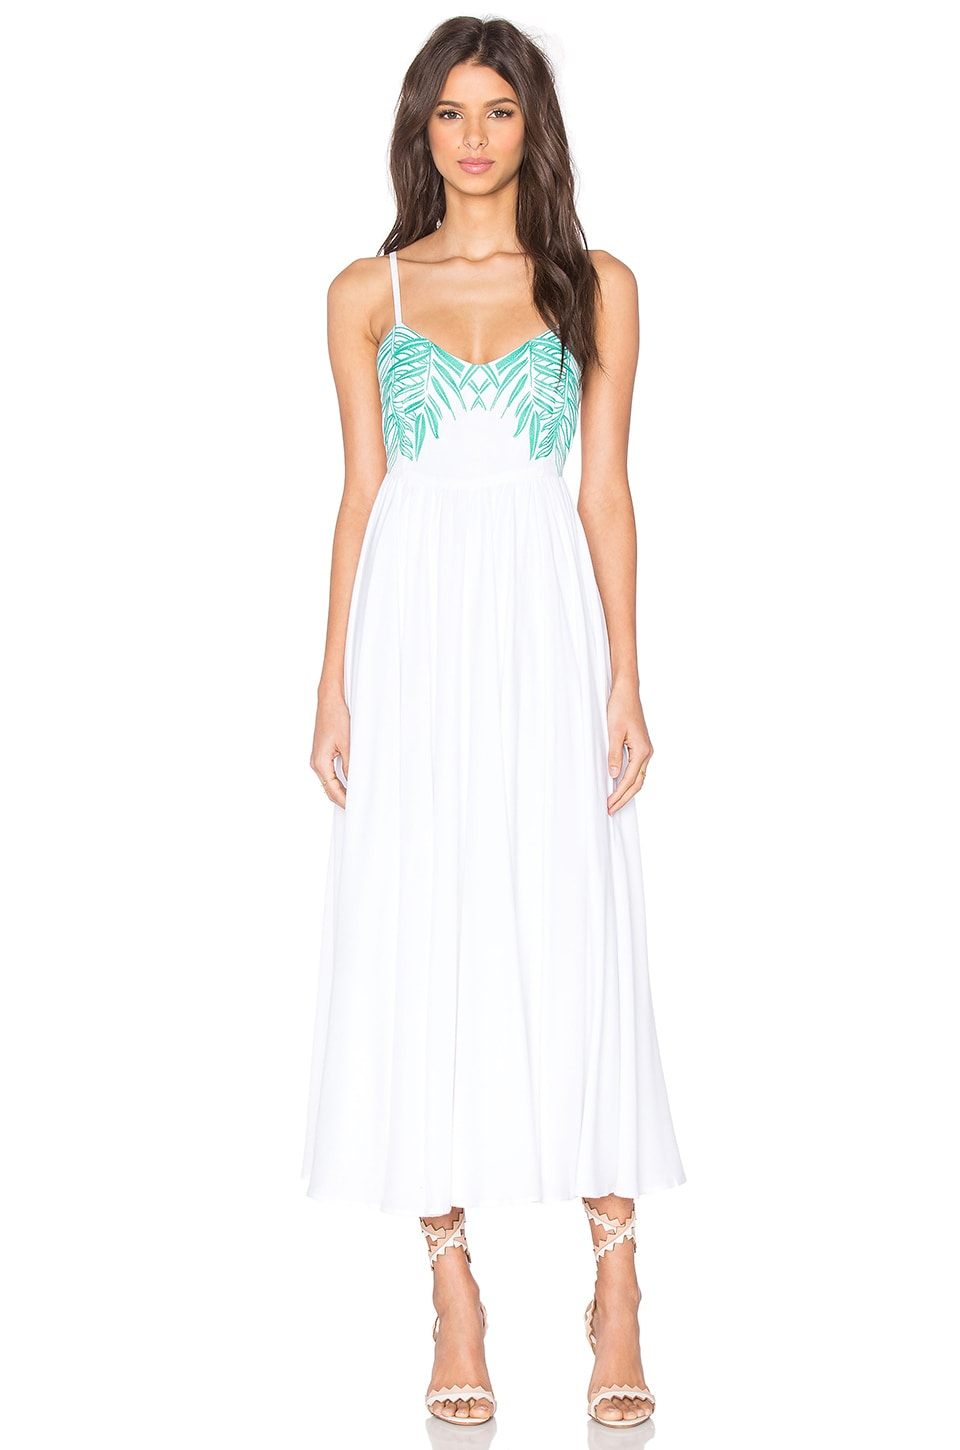 Mara Hoffman Leaf Embroidered Tie Back Dress in White